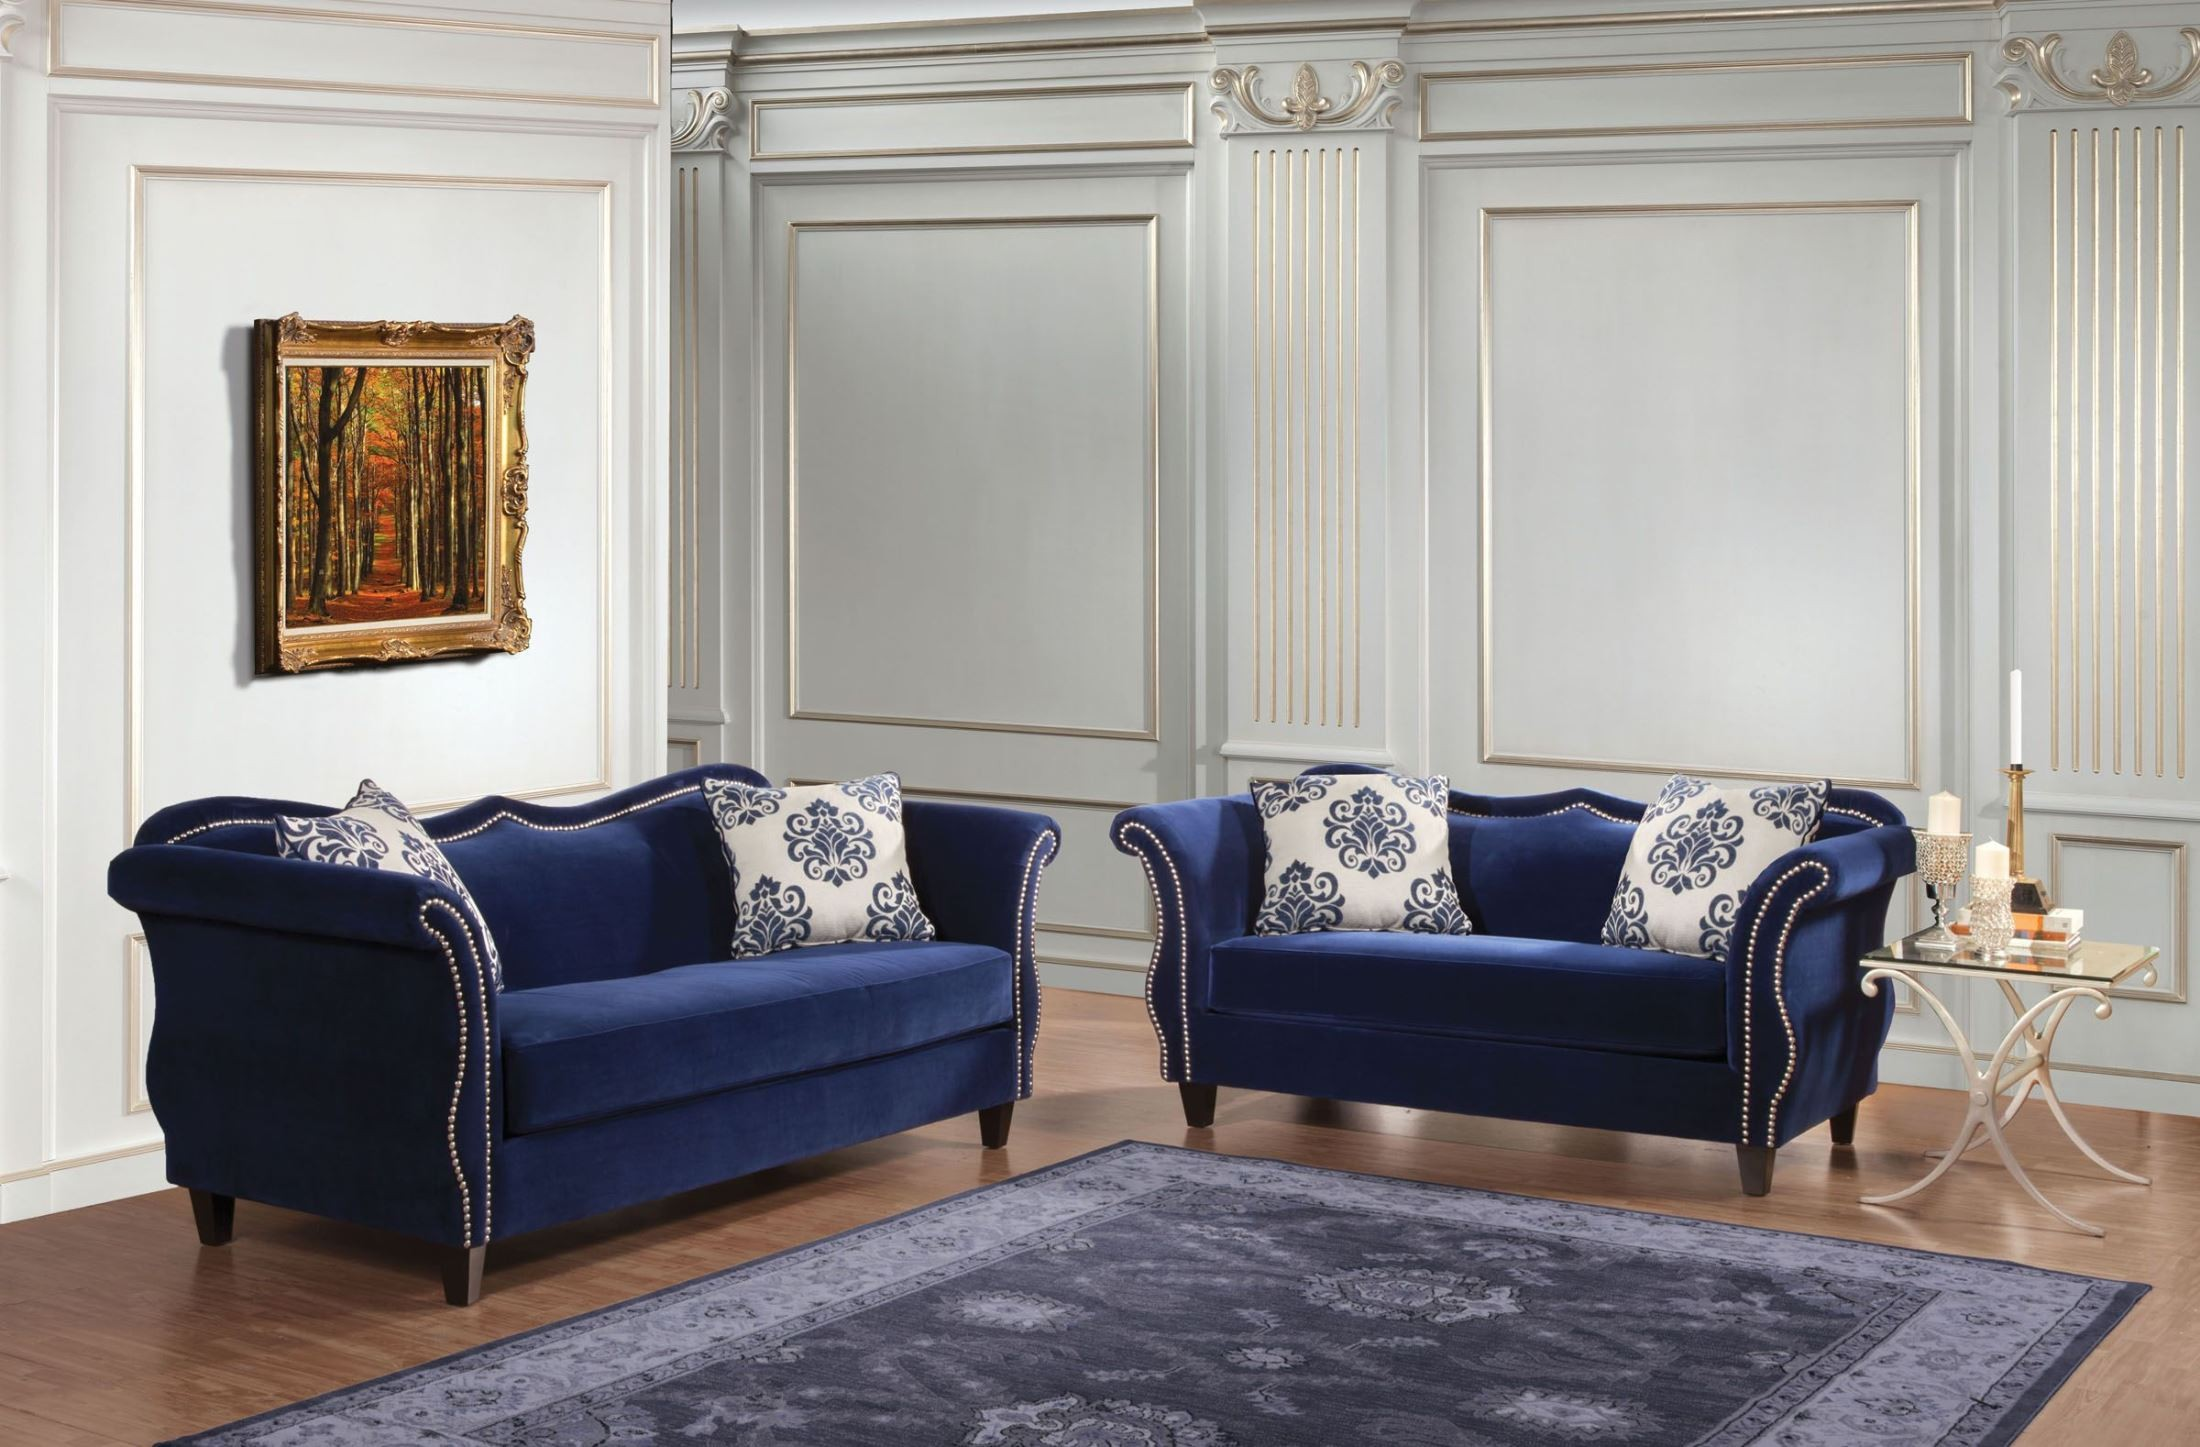 Zaffiro royal blue living room set sm2231 sf furniture for Living room decor sets